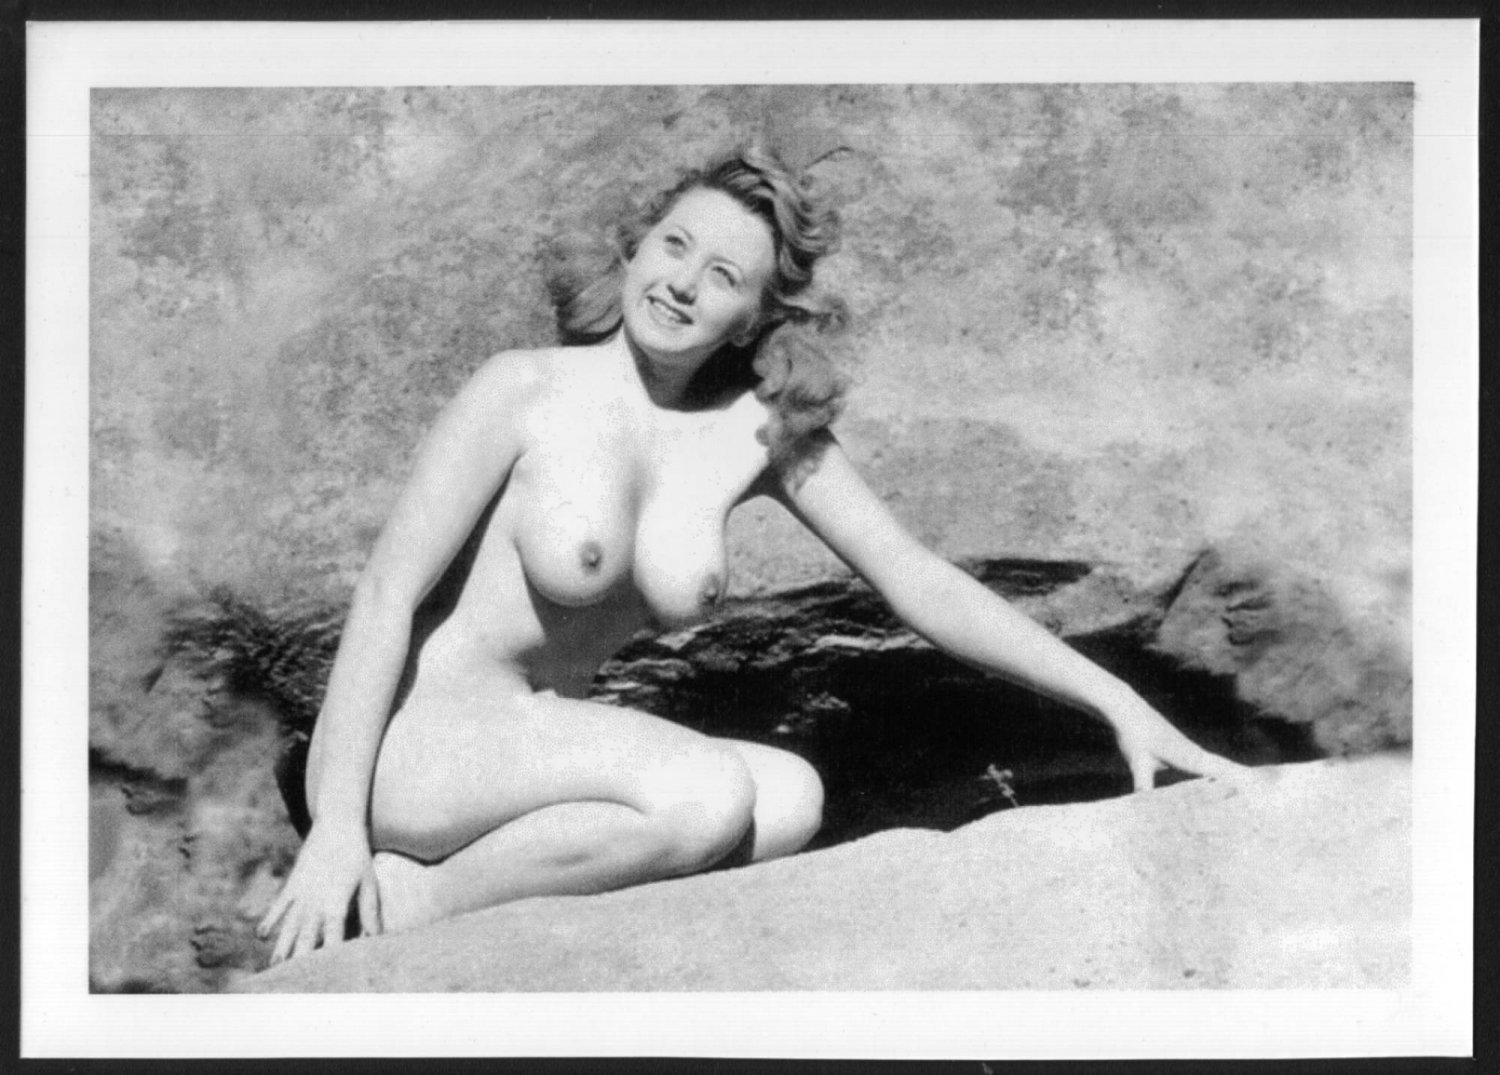 ACTRESS JOAN BLONDELL TOPLESS NUDE NEW REPRINT  5X7    JB-5